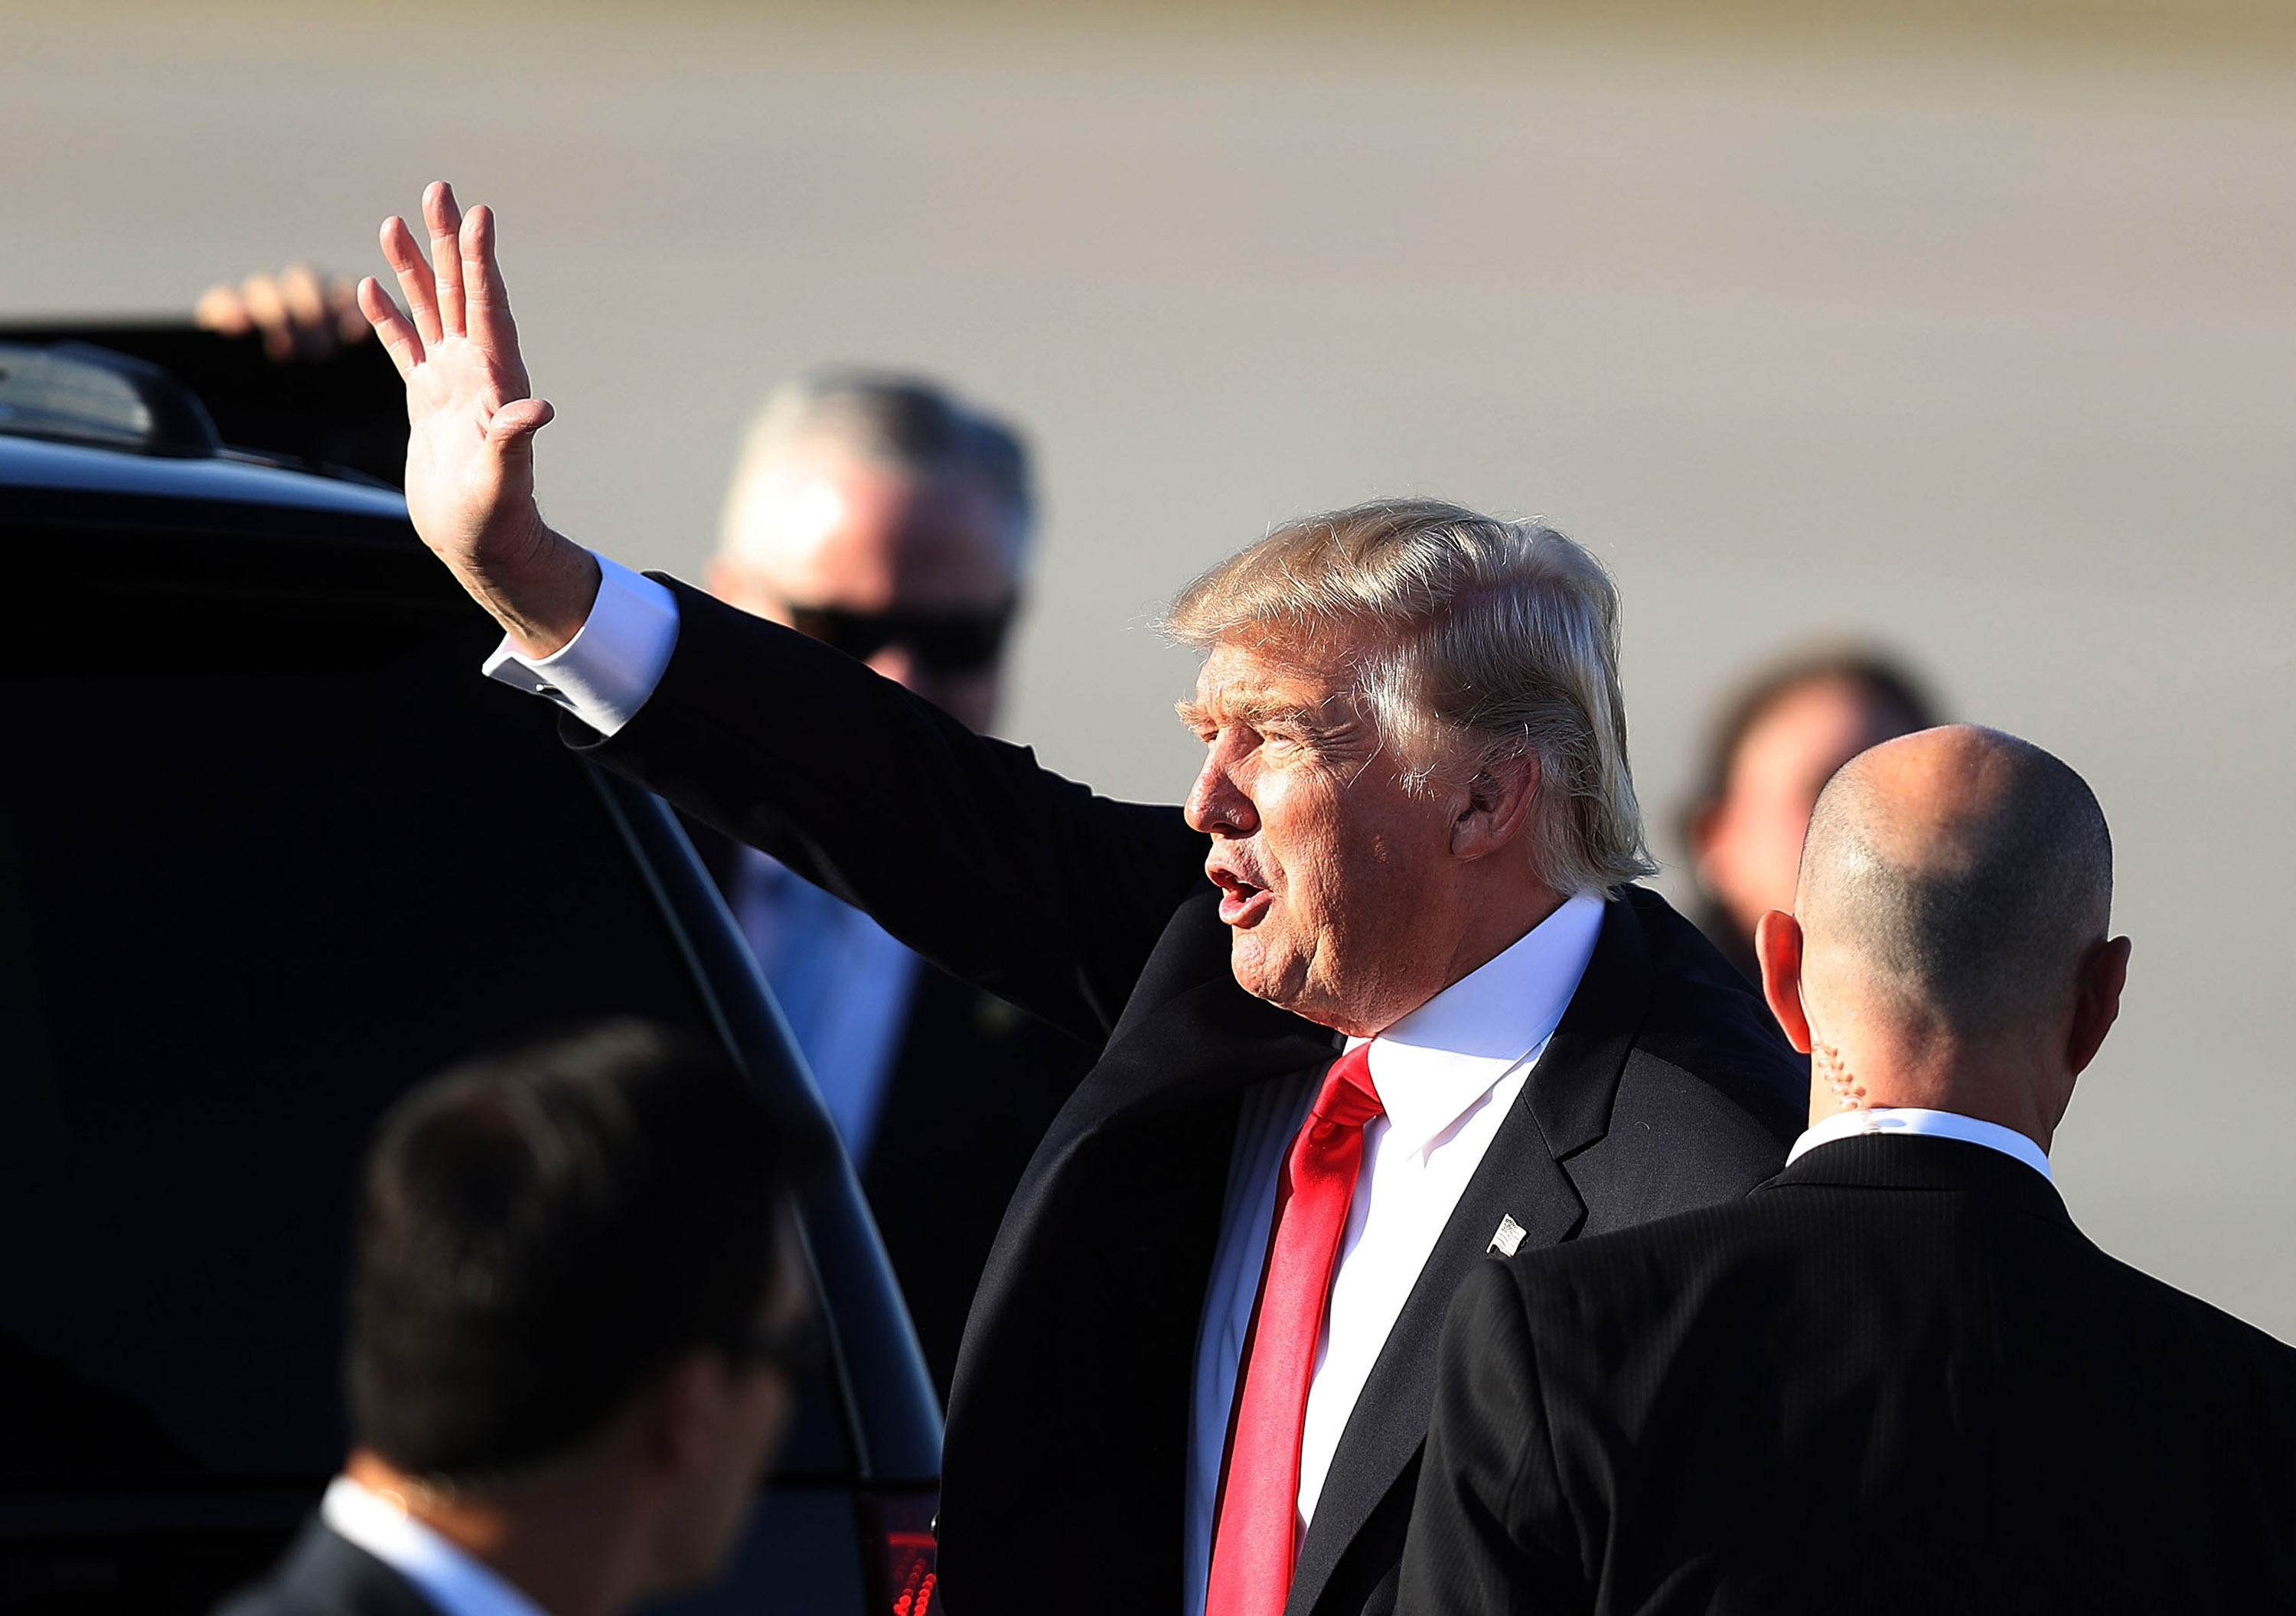 President Donald Trump waves to supporters after arriving on Air Force One at the Palm Beach International Airport for a visit to his Mar-a-Lago Resort for the weekend on February 3, 2017 in Palm Beach, Florida.